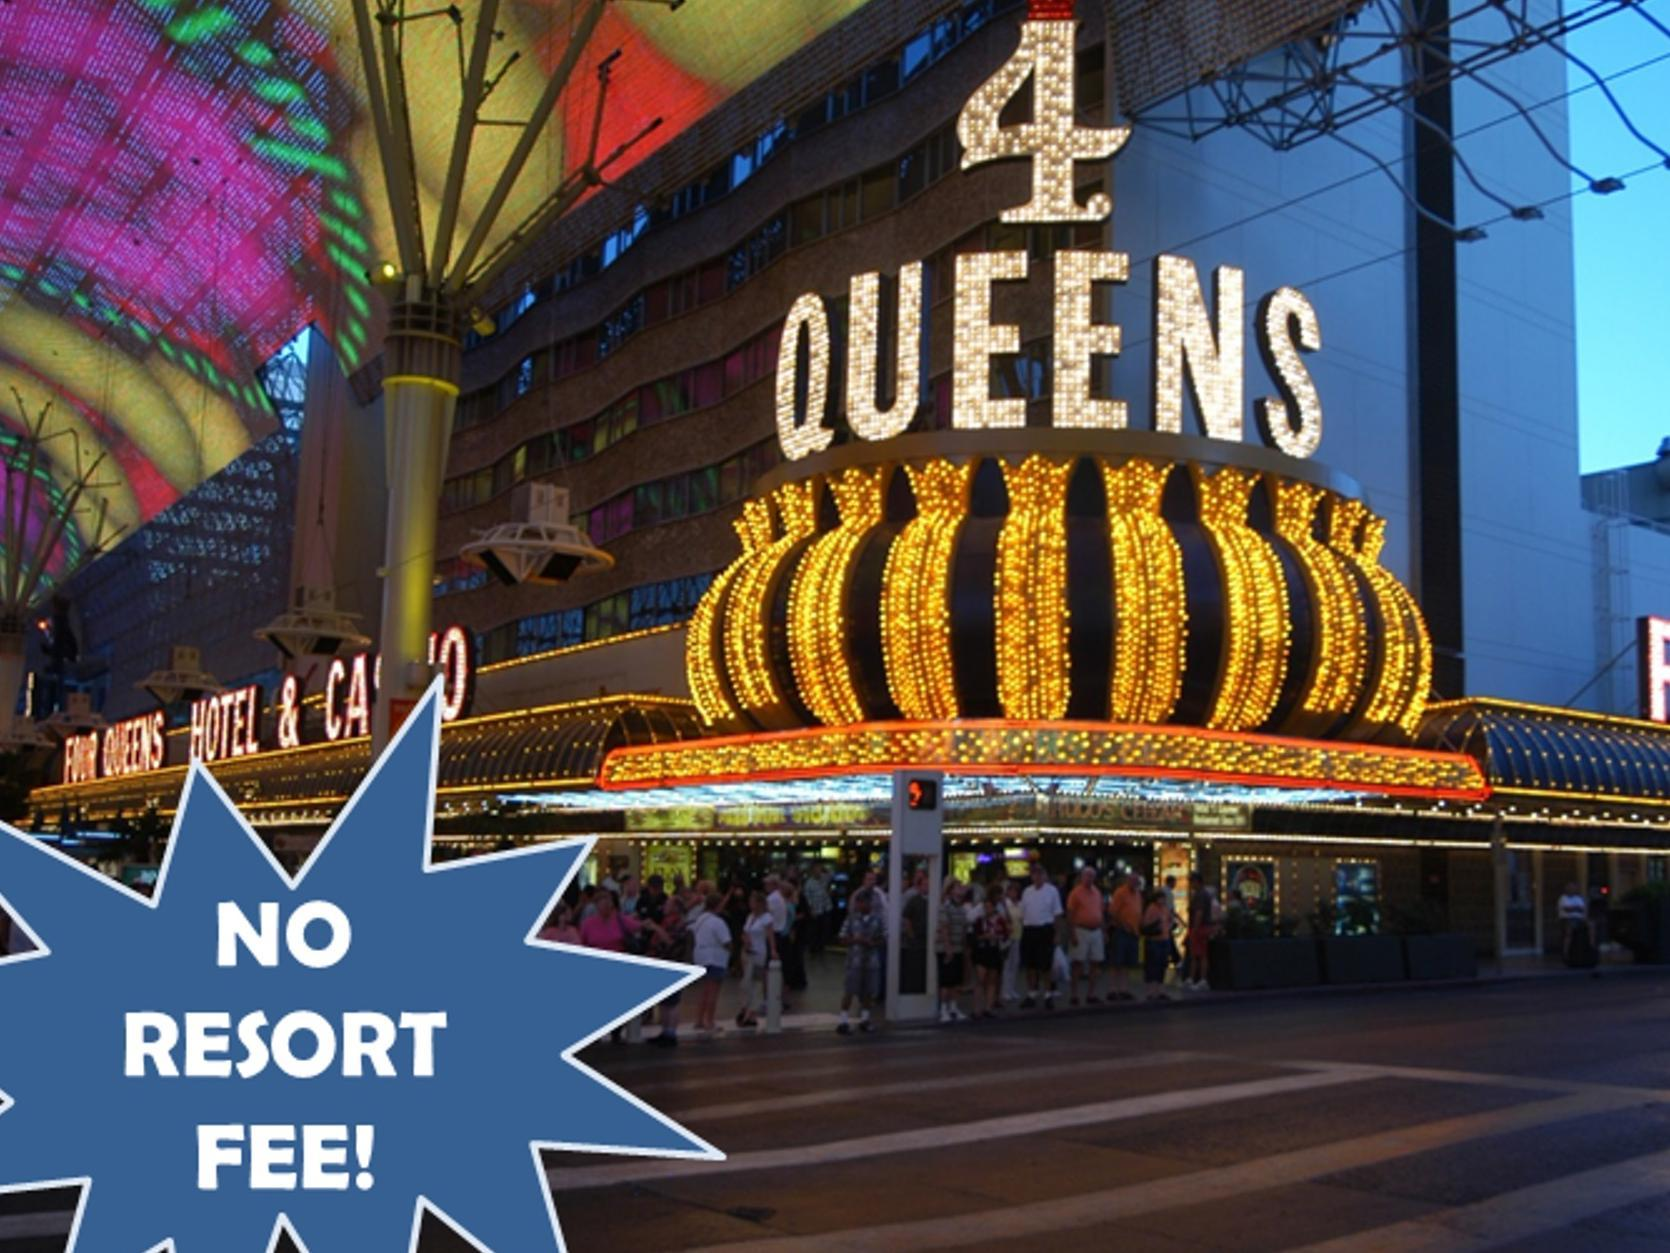 Four Queens Hotel & Casino Las Vegas (NV) - The Four Queens Hotel and Casino